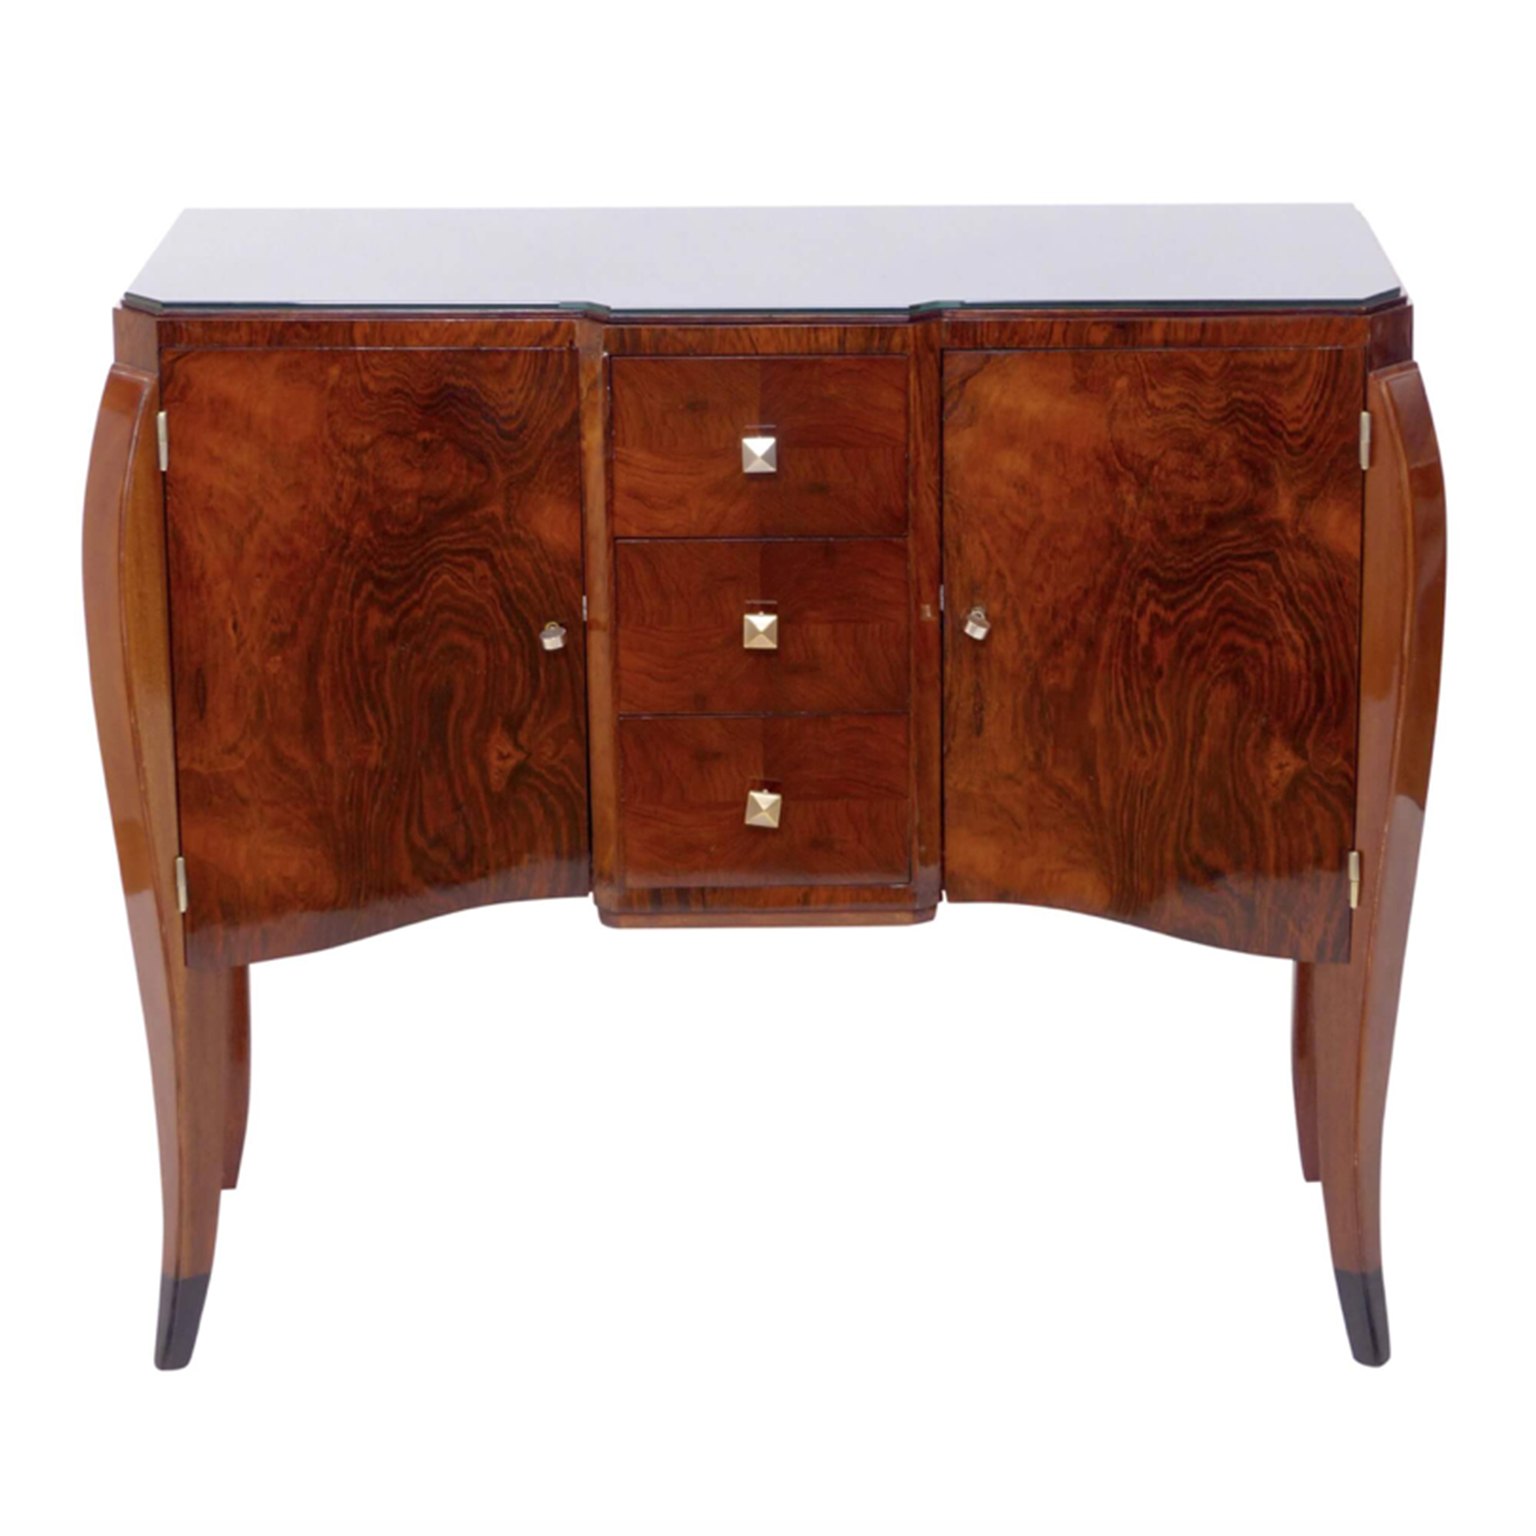 Rio Rosewood wood dresser with Mahogany details and curved legs